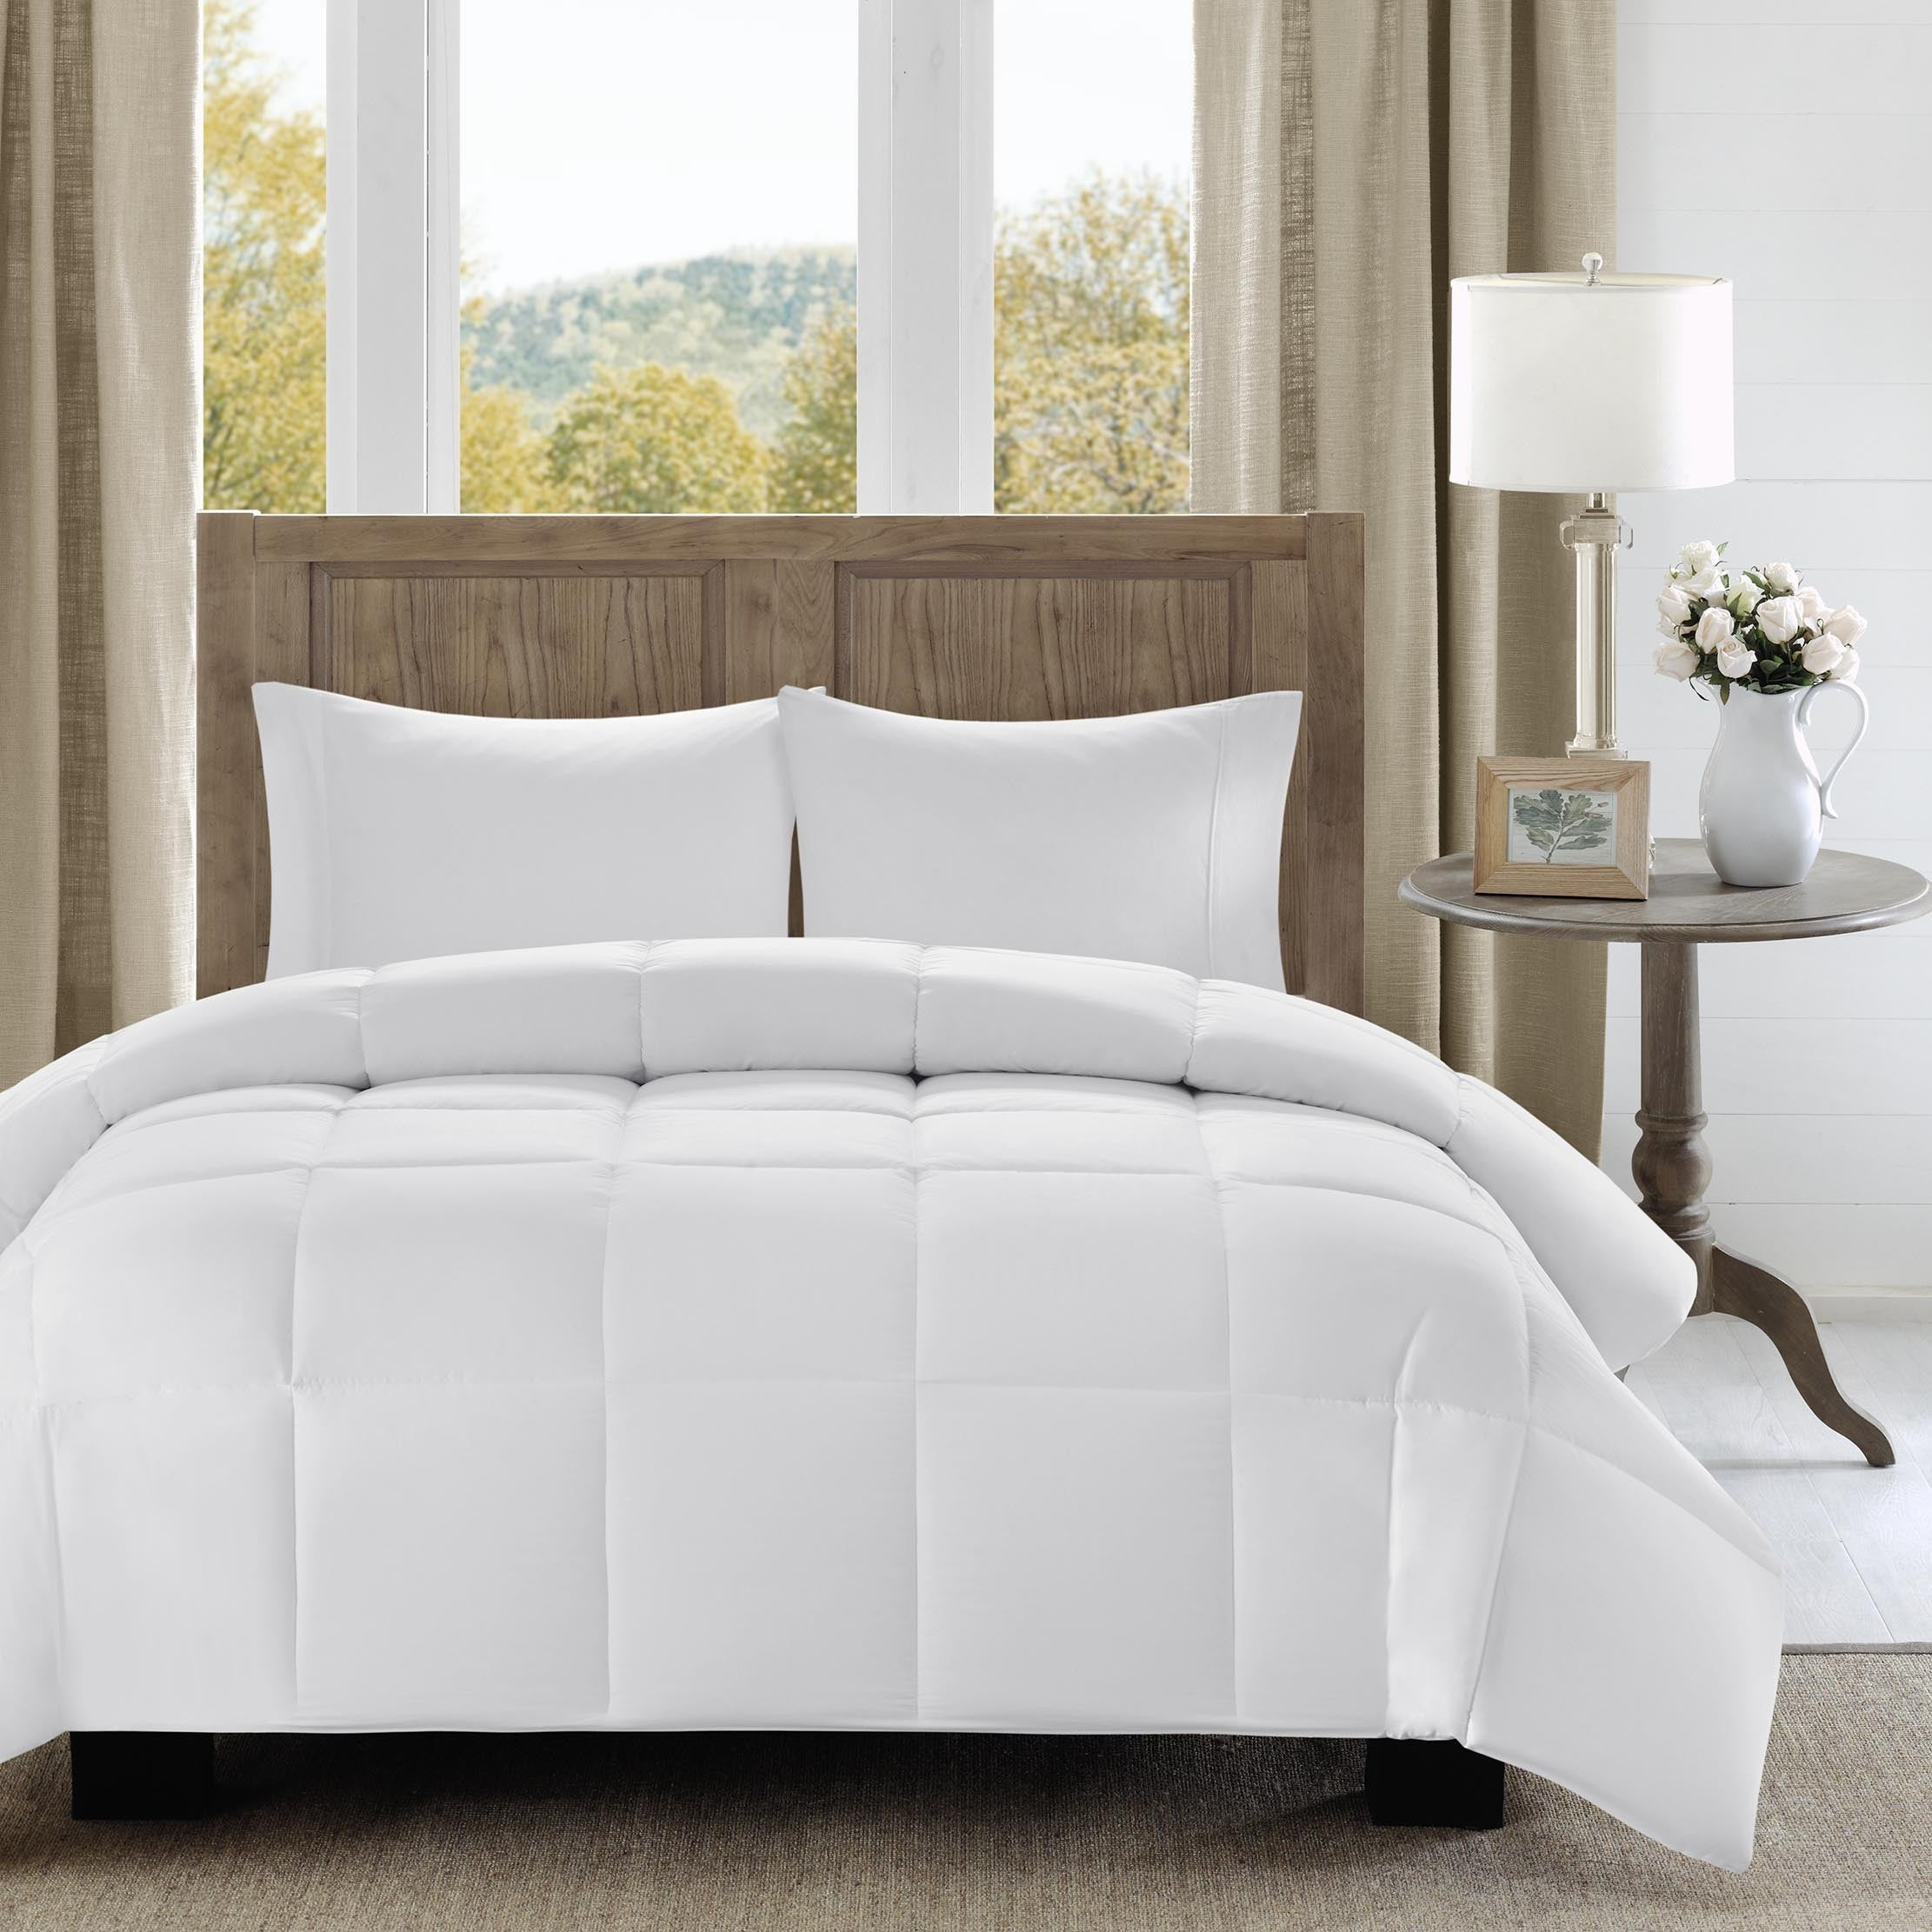 with classics resistant down windsor alternative comforter stain treatment bedding mini product bath reversible park set madison home essentials